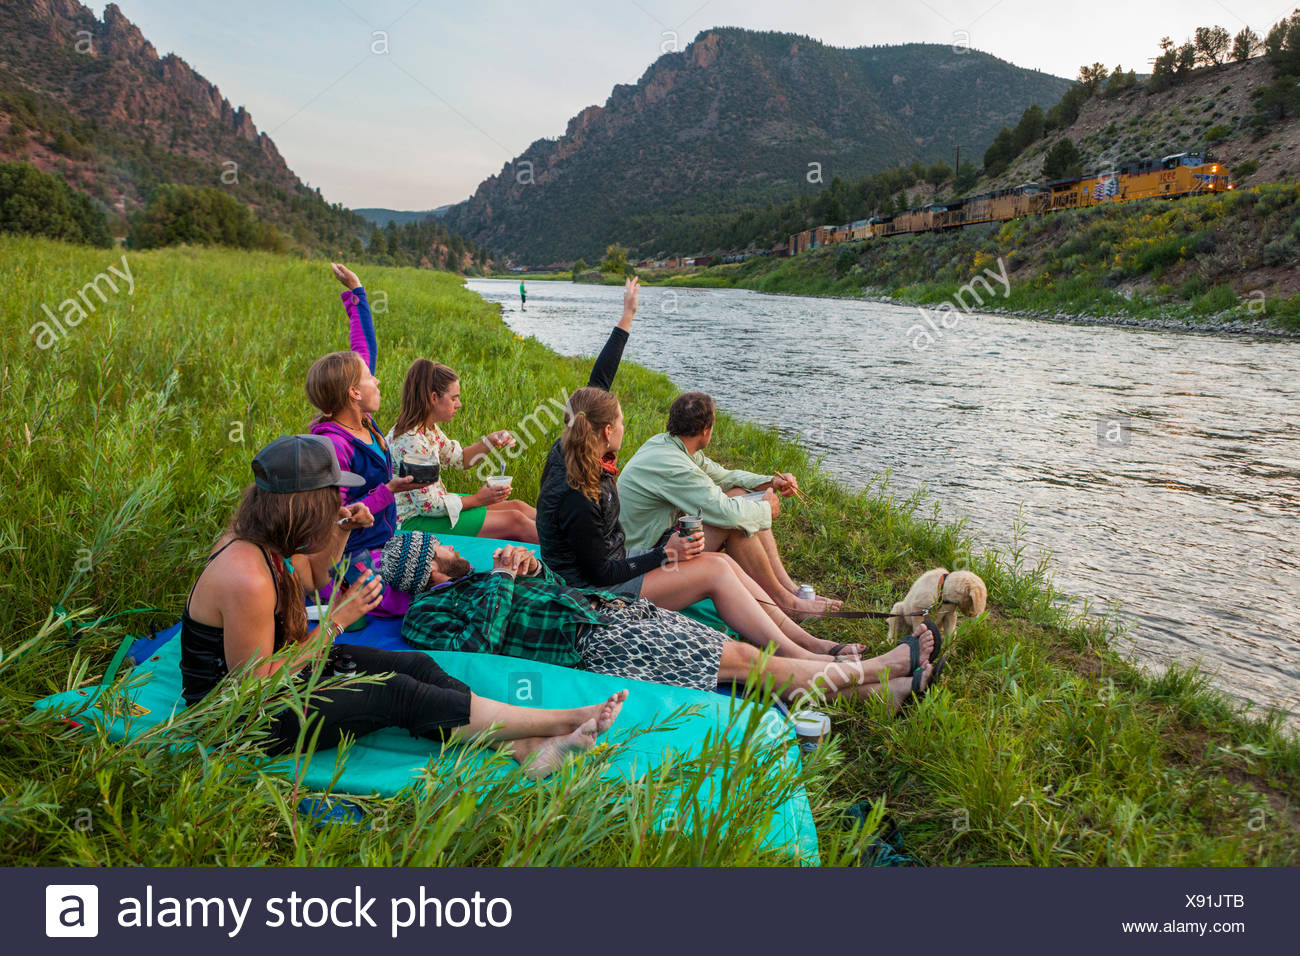 Boaters wave at a passing freight train while eating dinner by the Upper Colorado River at the Benches Campground near Kremmling, Colorado. - Stock Image